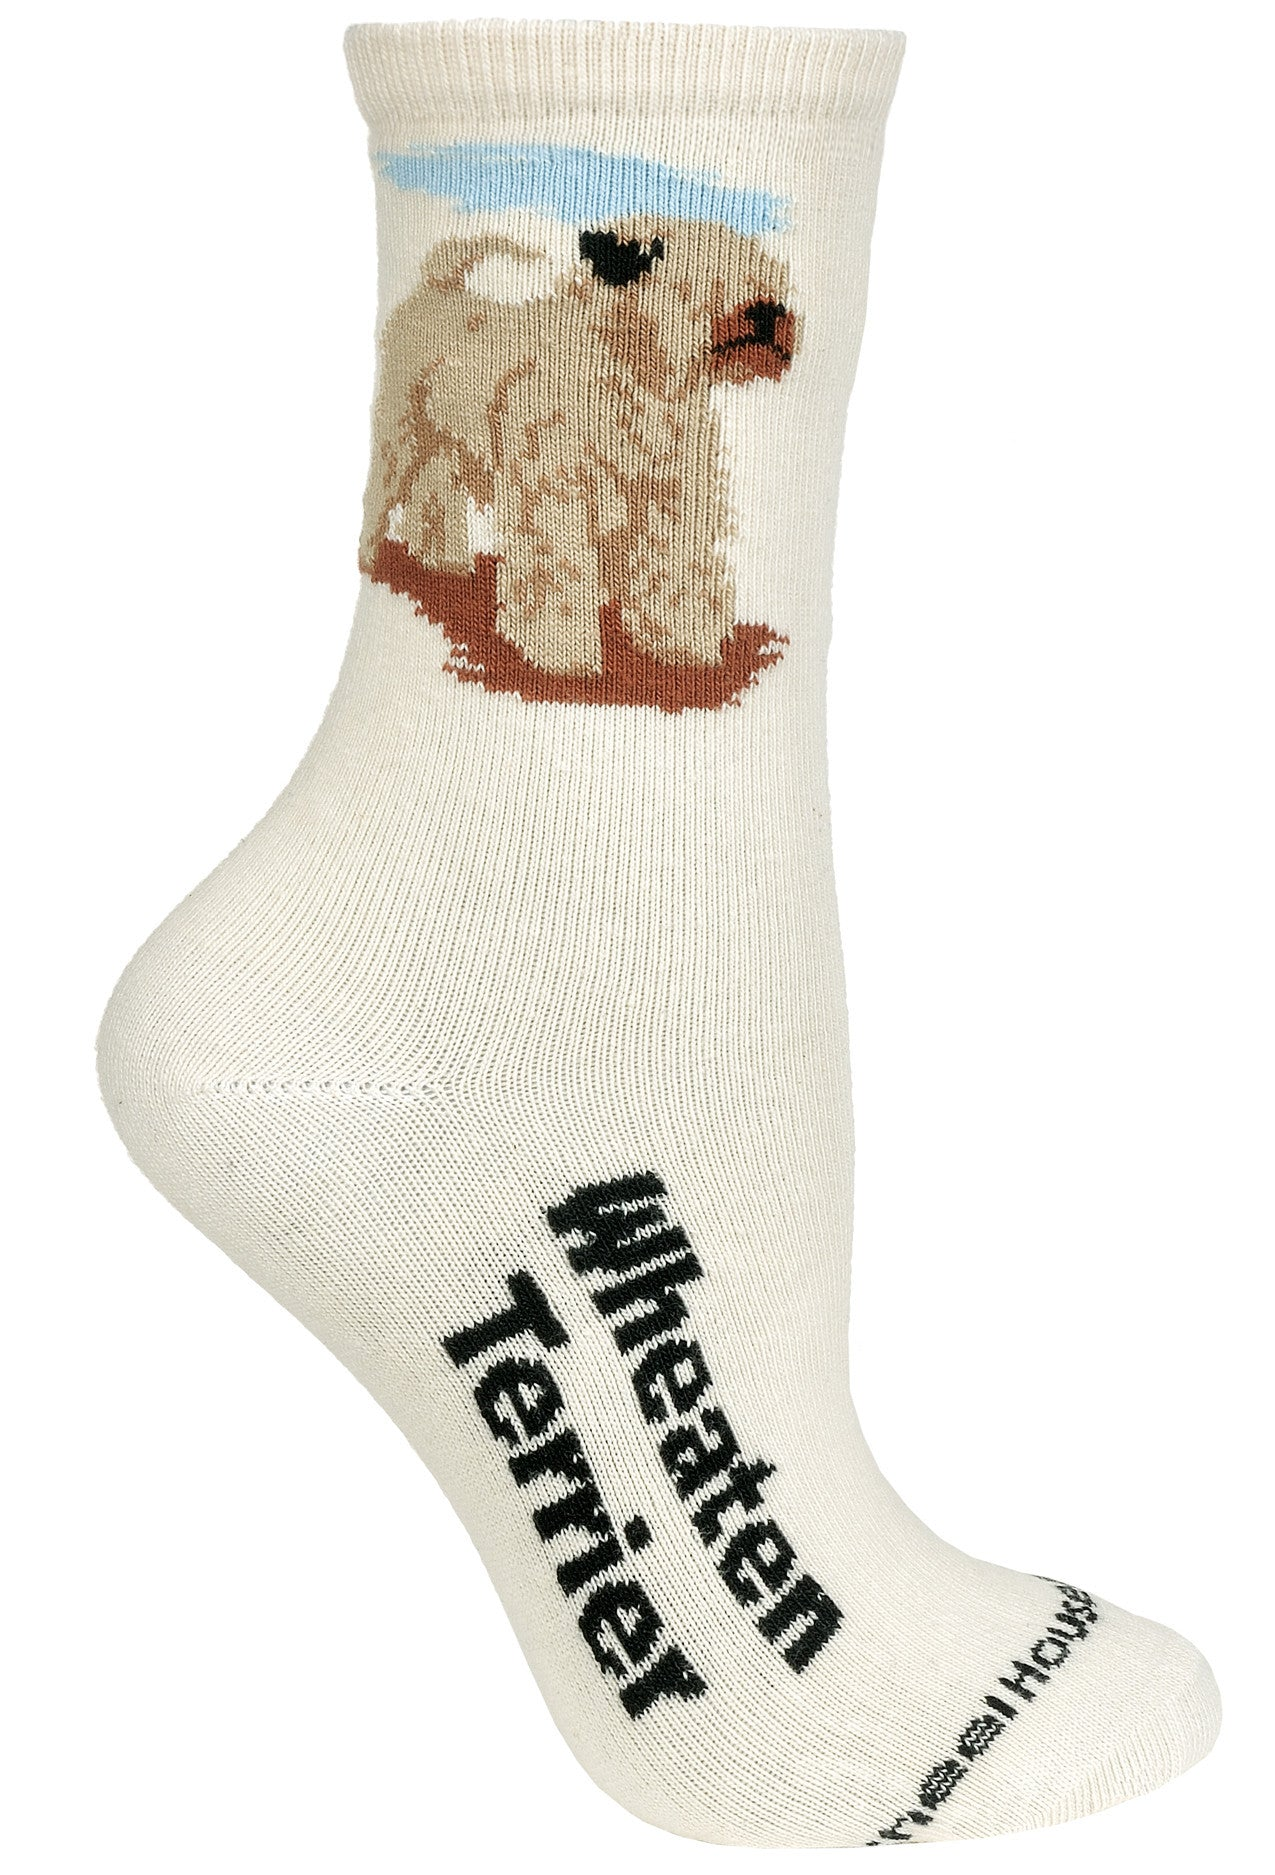 Wheaten on Natural Socks